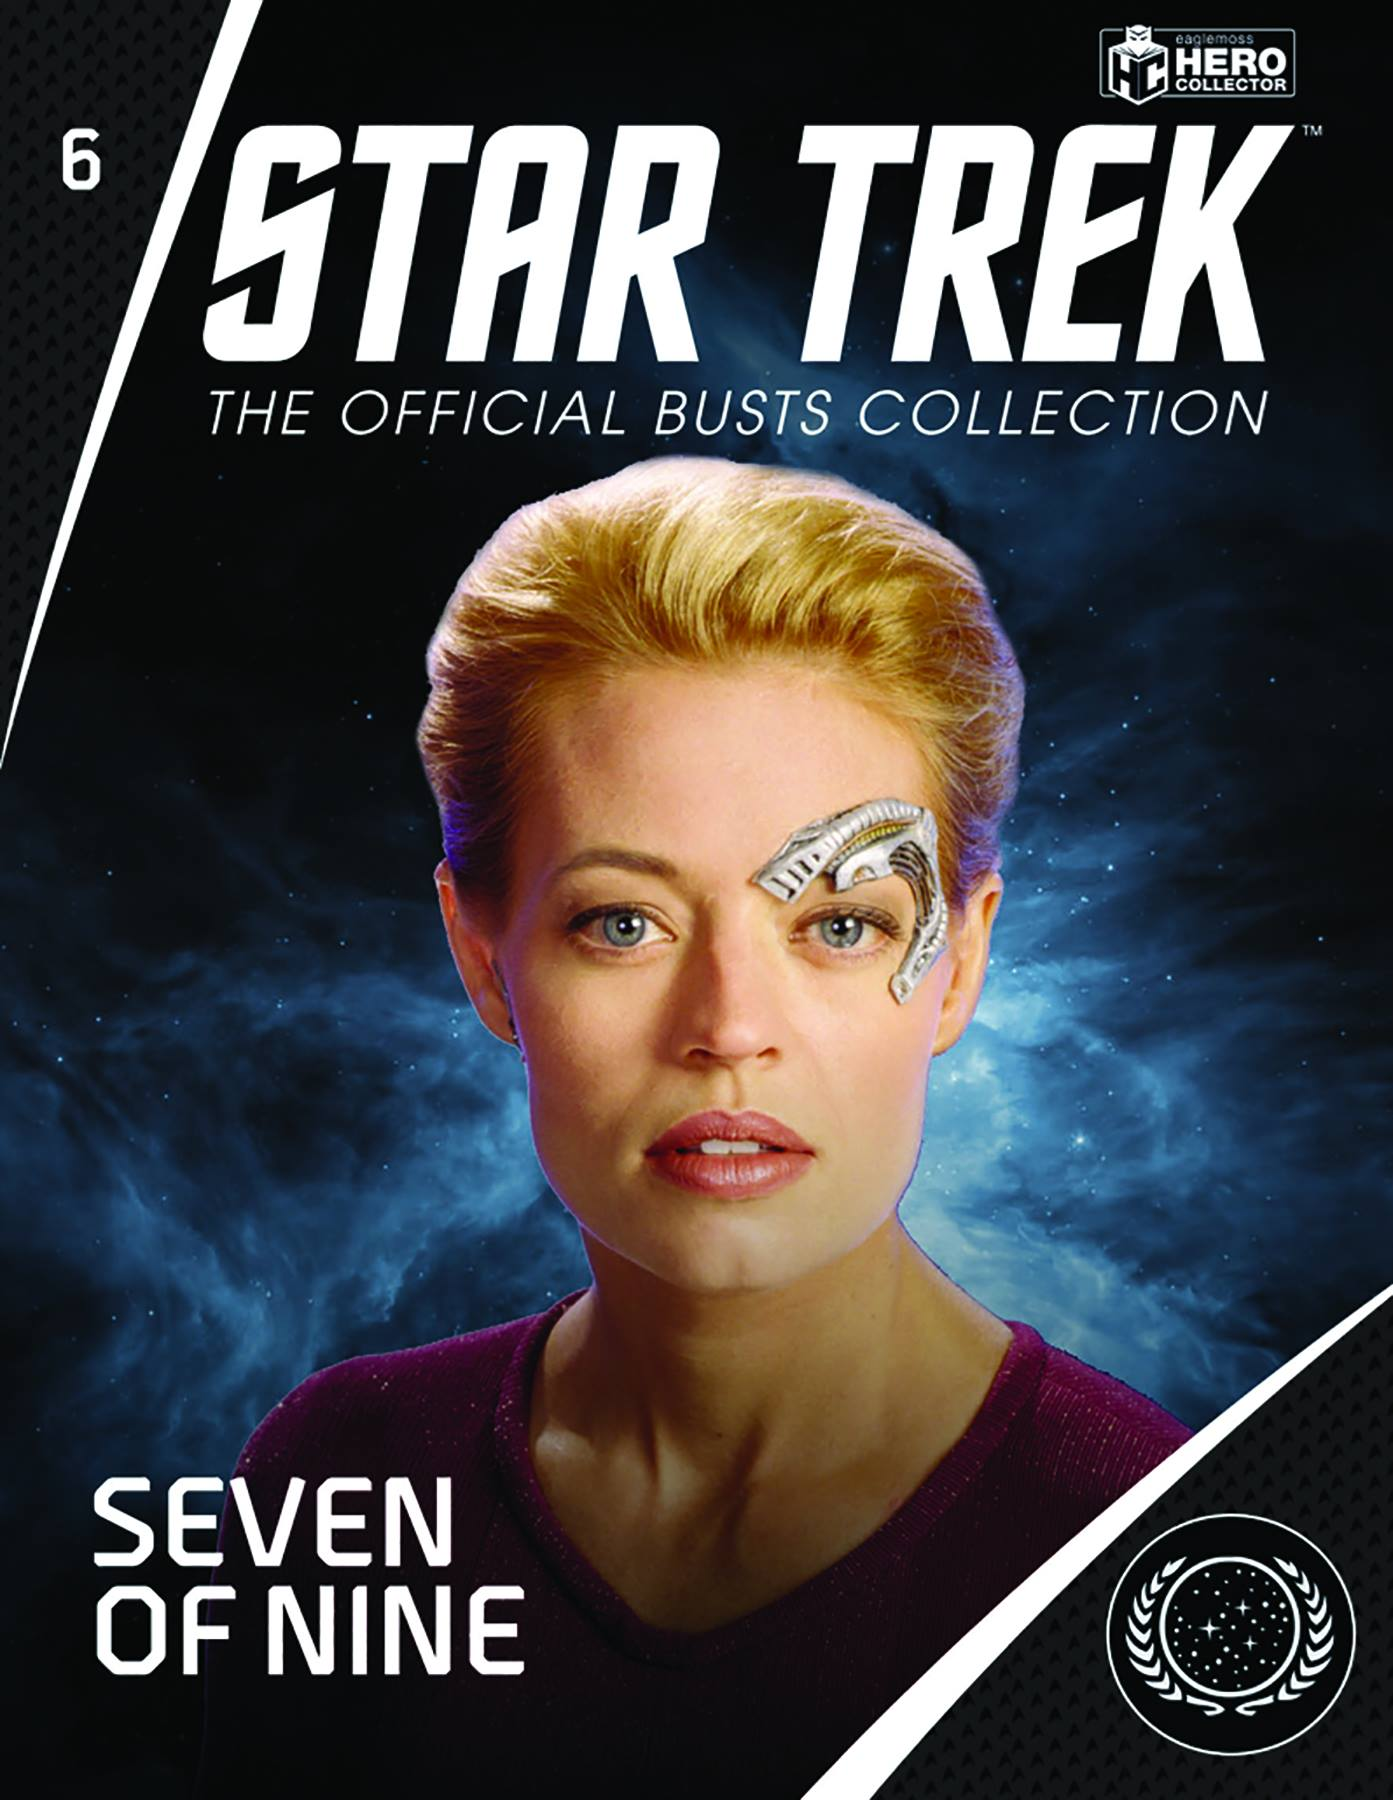 Eaglemoss Star Trek Busts Issue B6